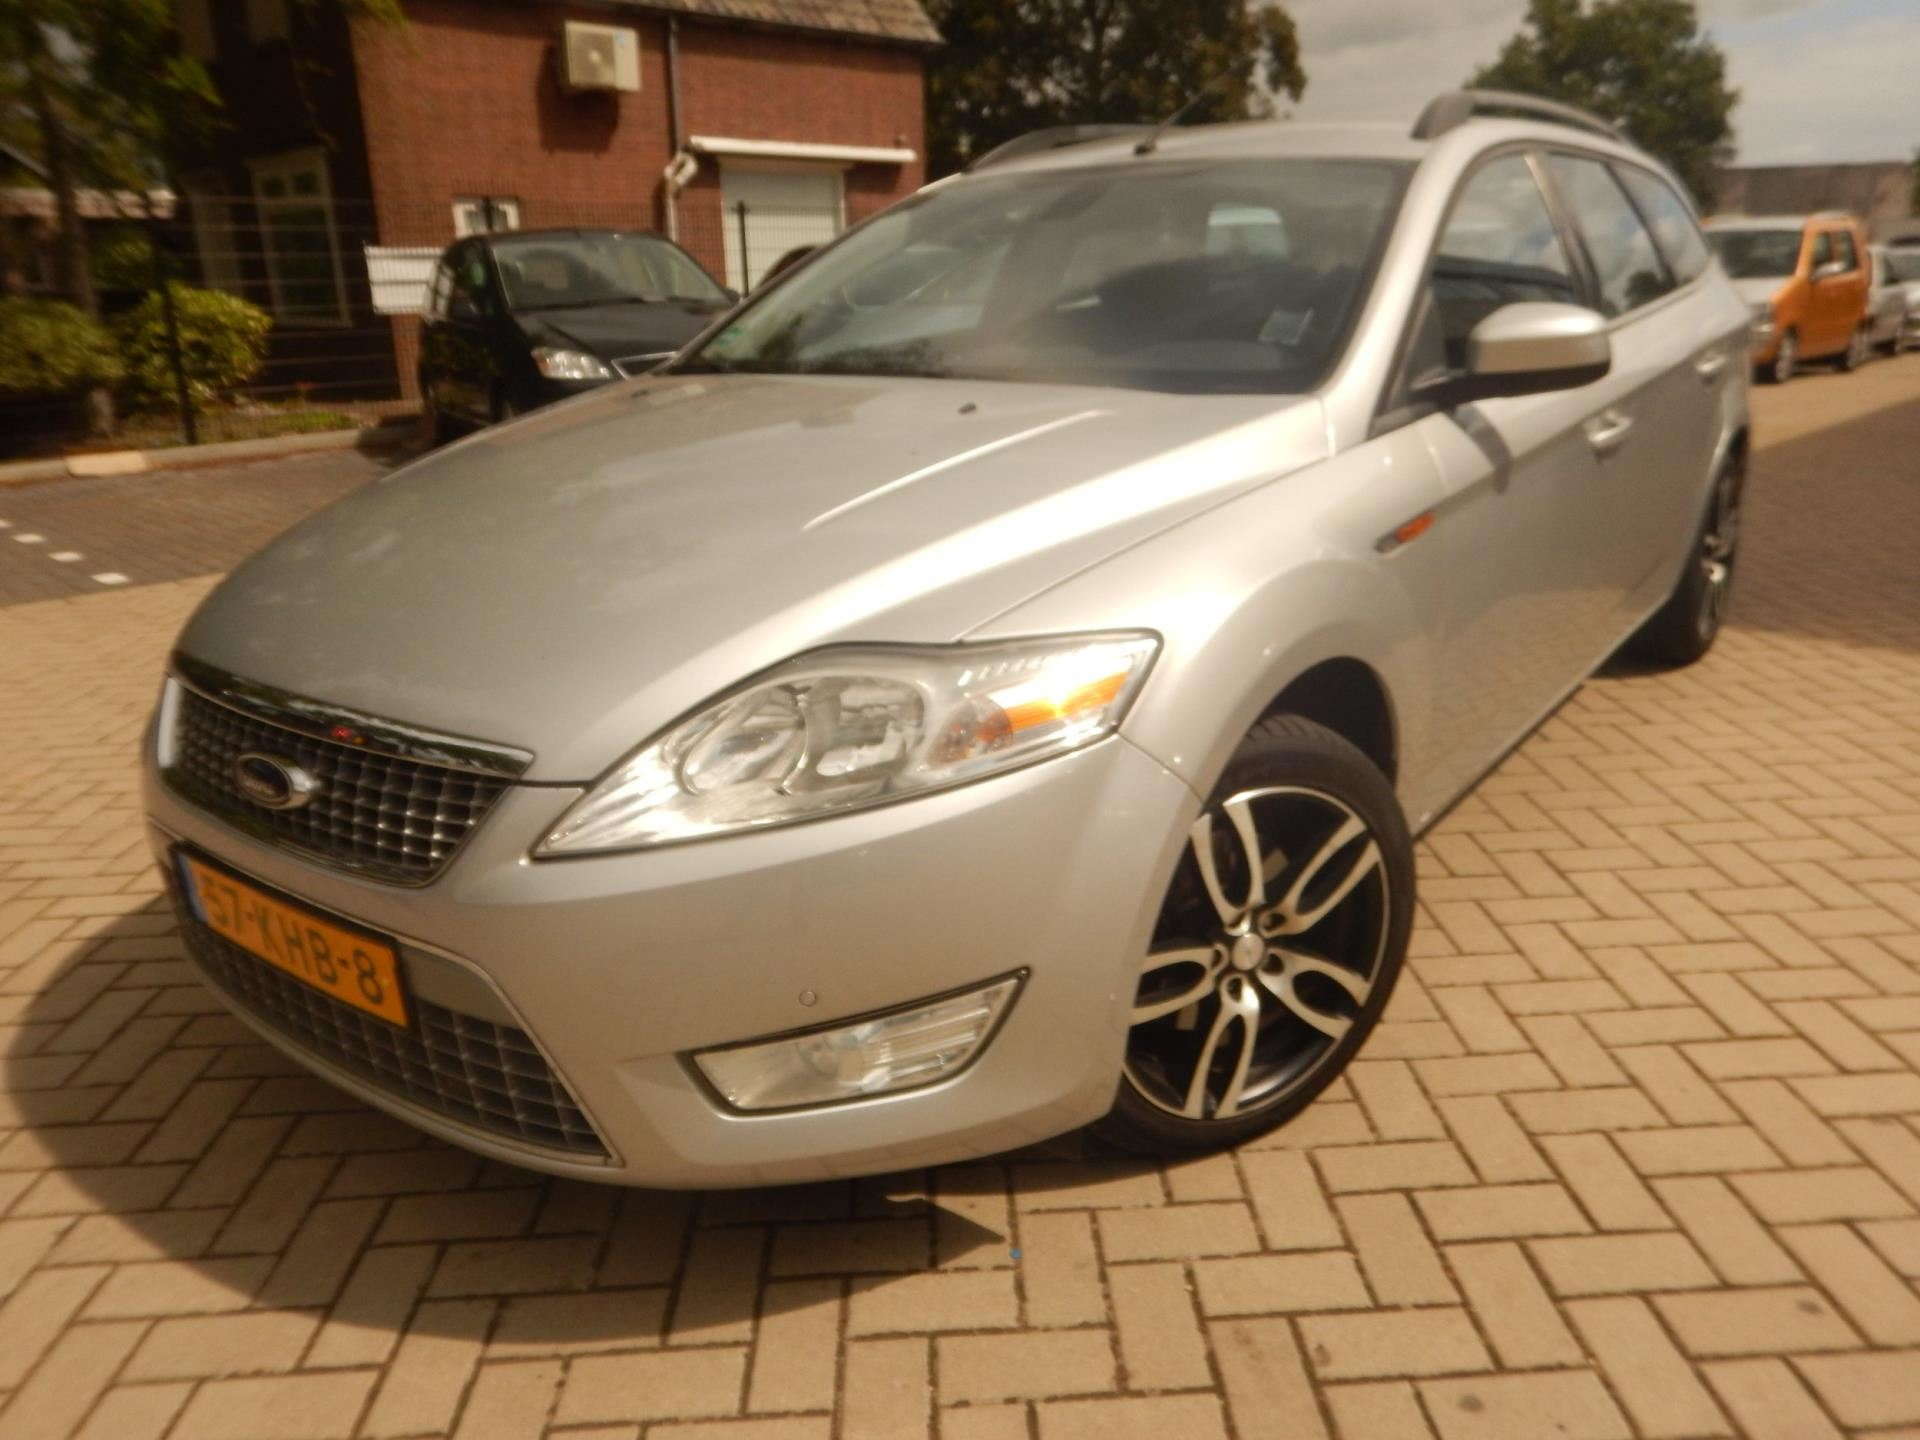 Ford Mondeo Wagon occasion - Pitstop 4 You